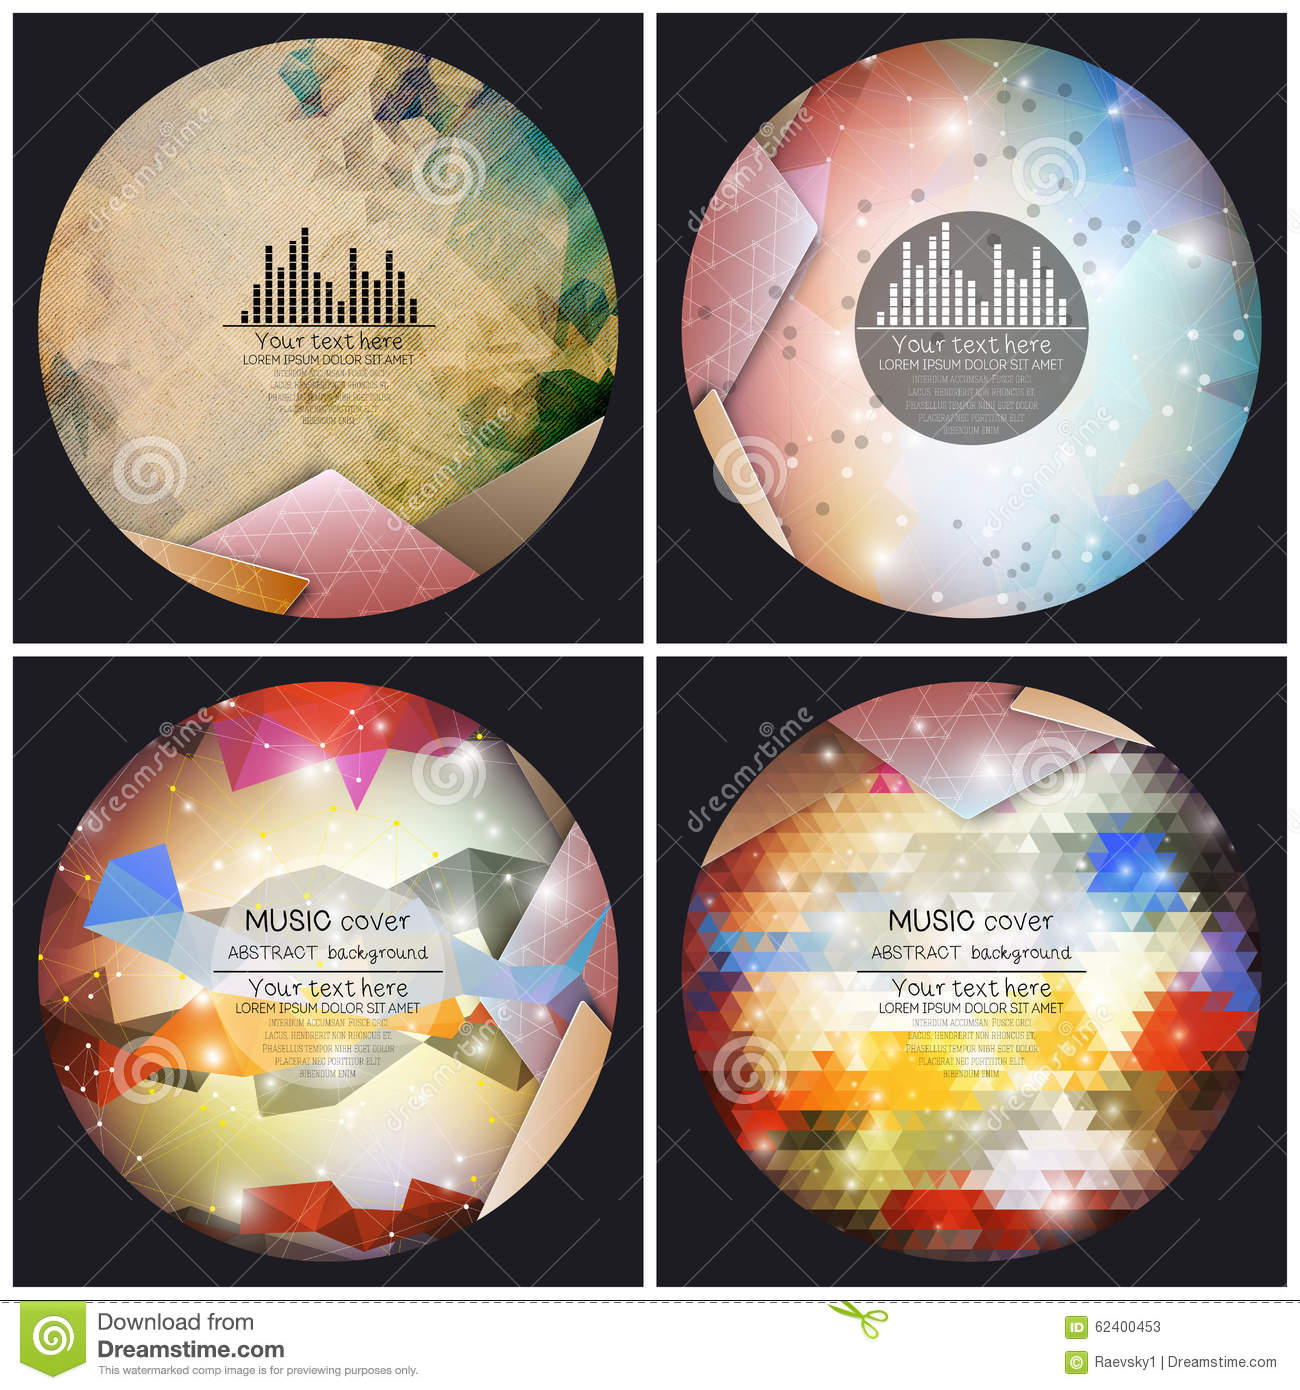 Set of 4 music album cover templates. Abstract